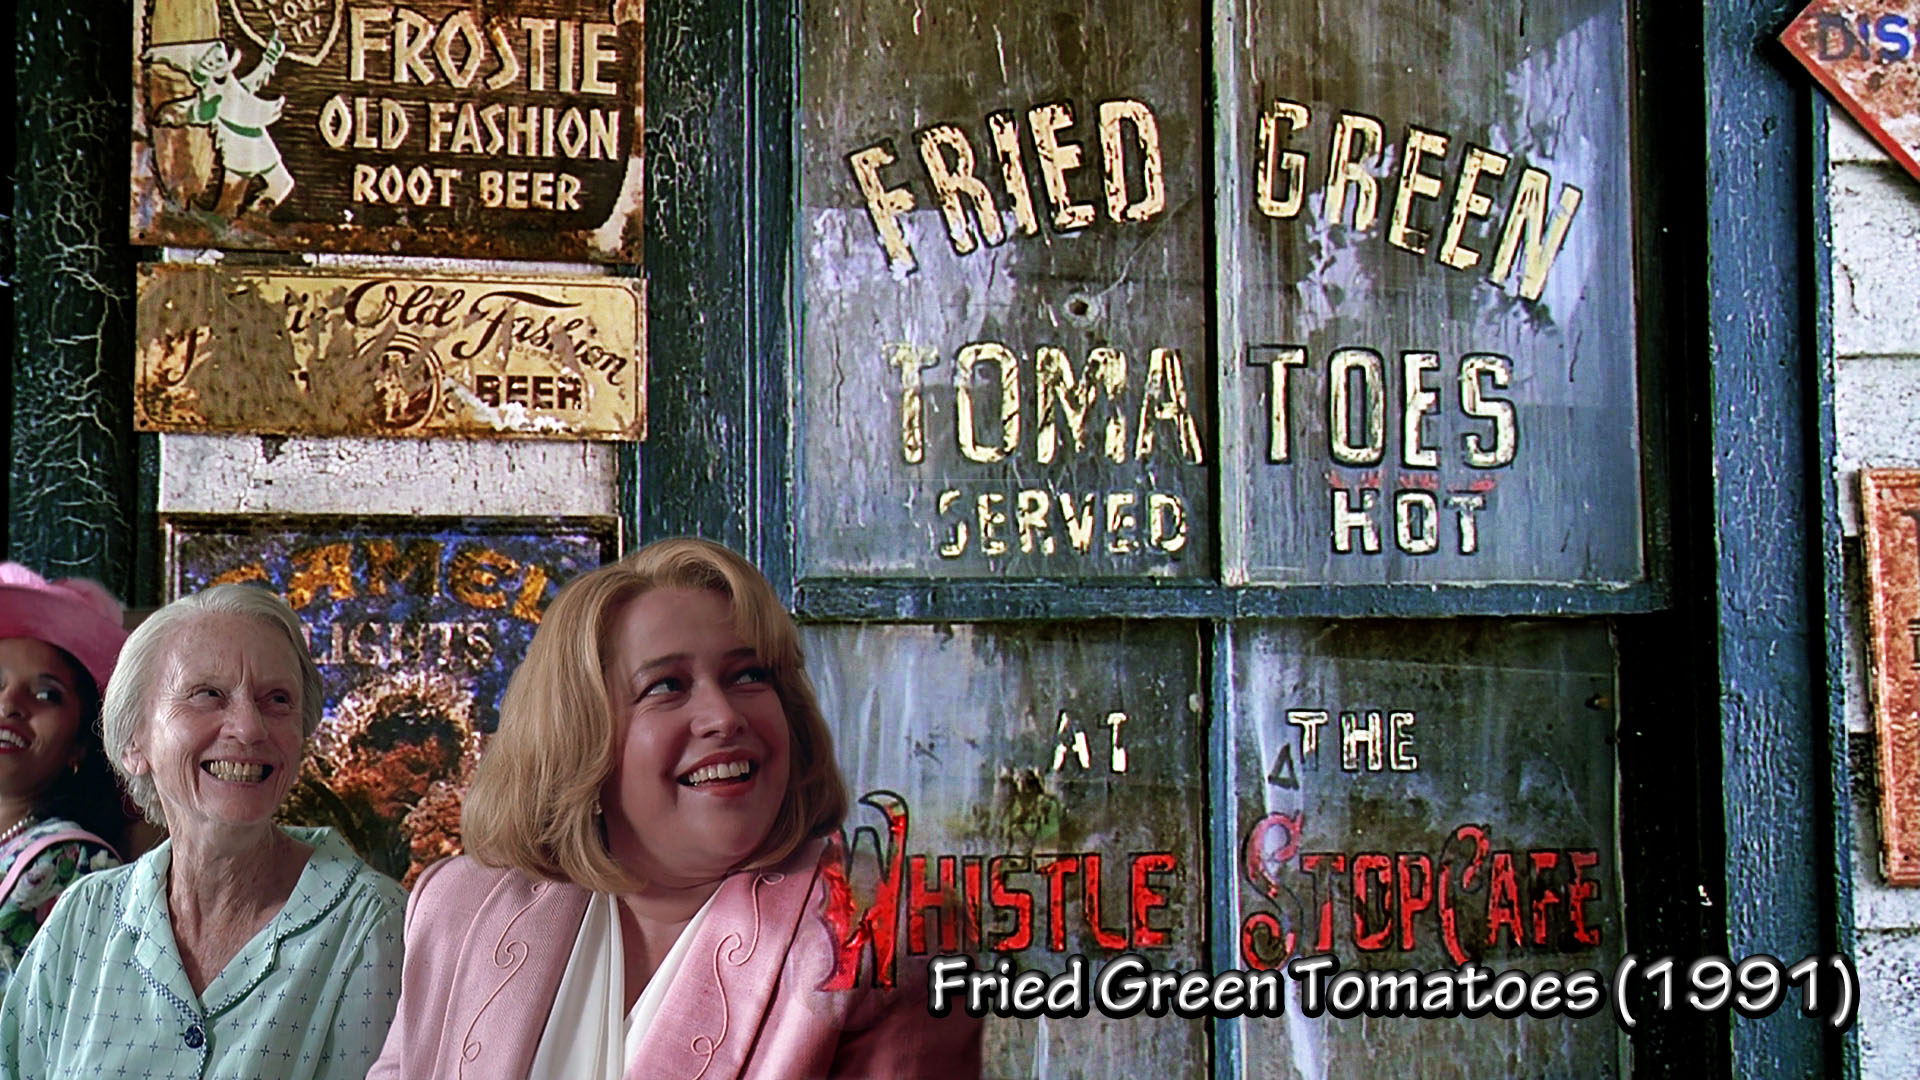 Fried Green Tomatoes 1991 - Movies Wallpaper (34996712 ...